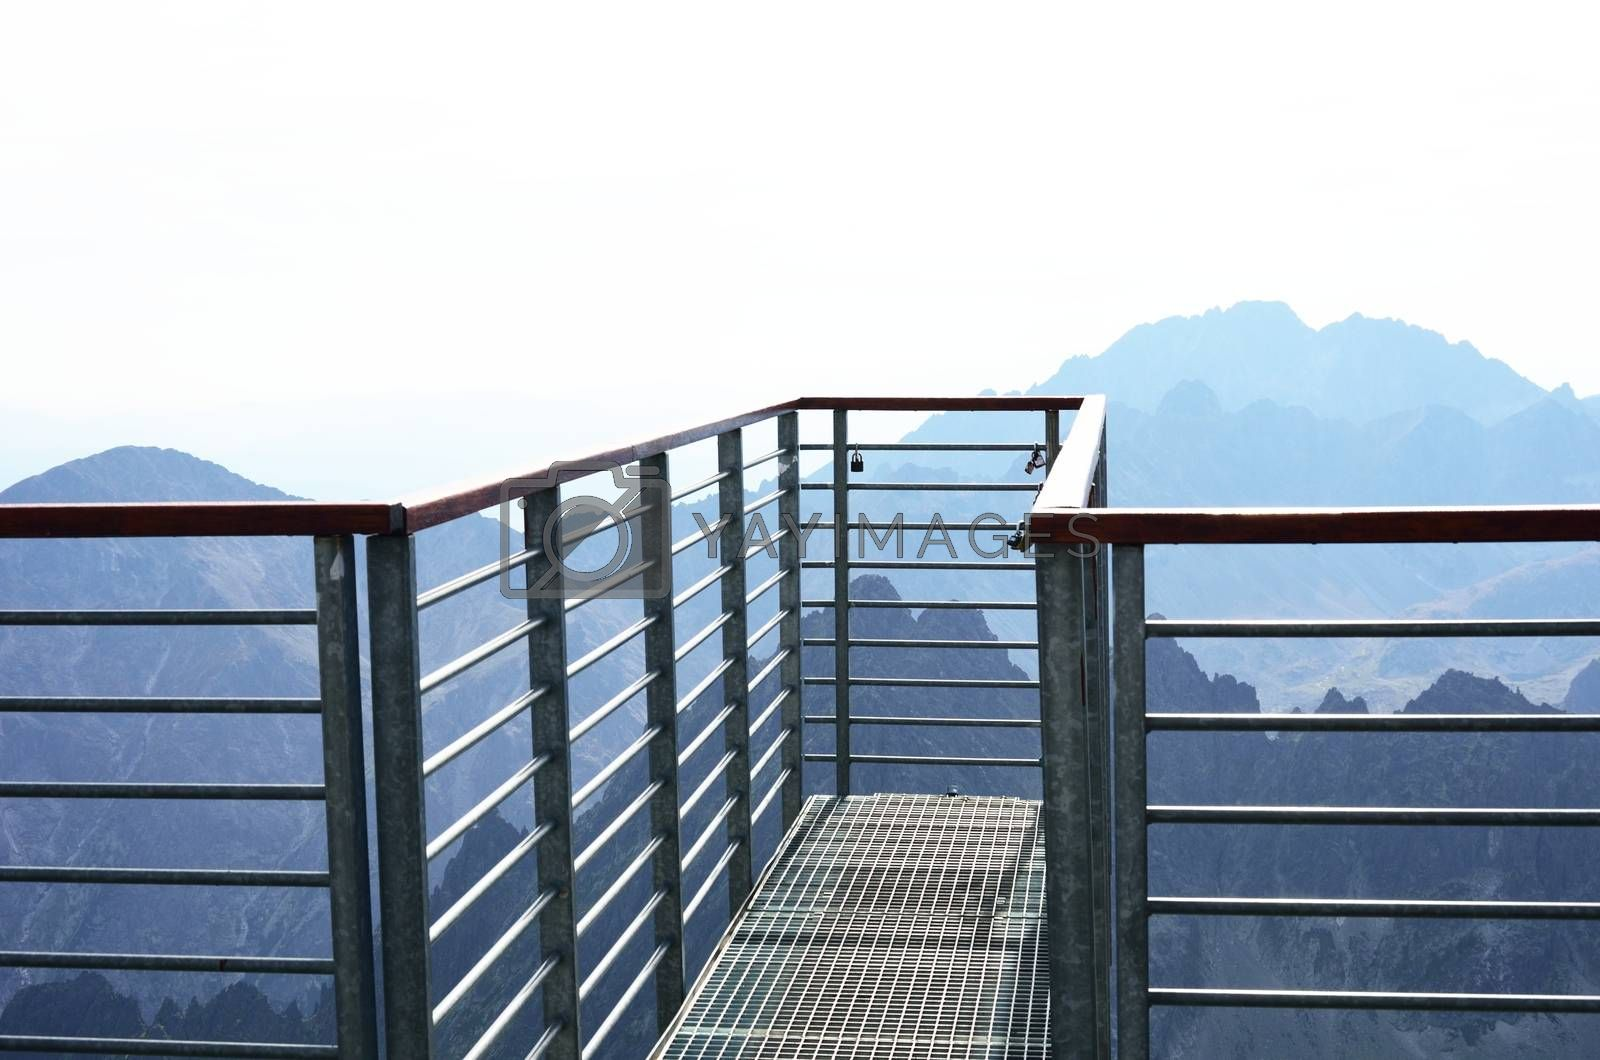 Walkway projecting from mountain top